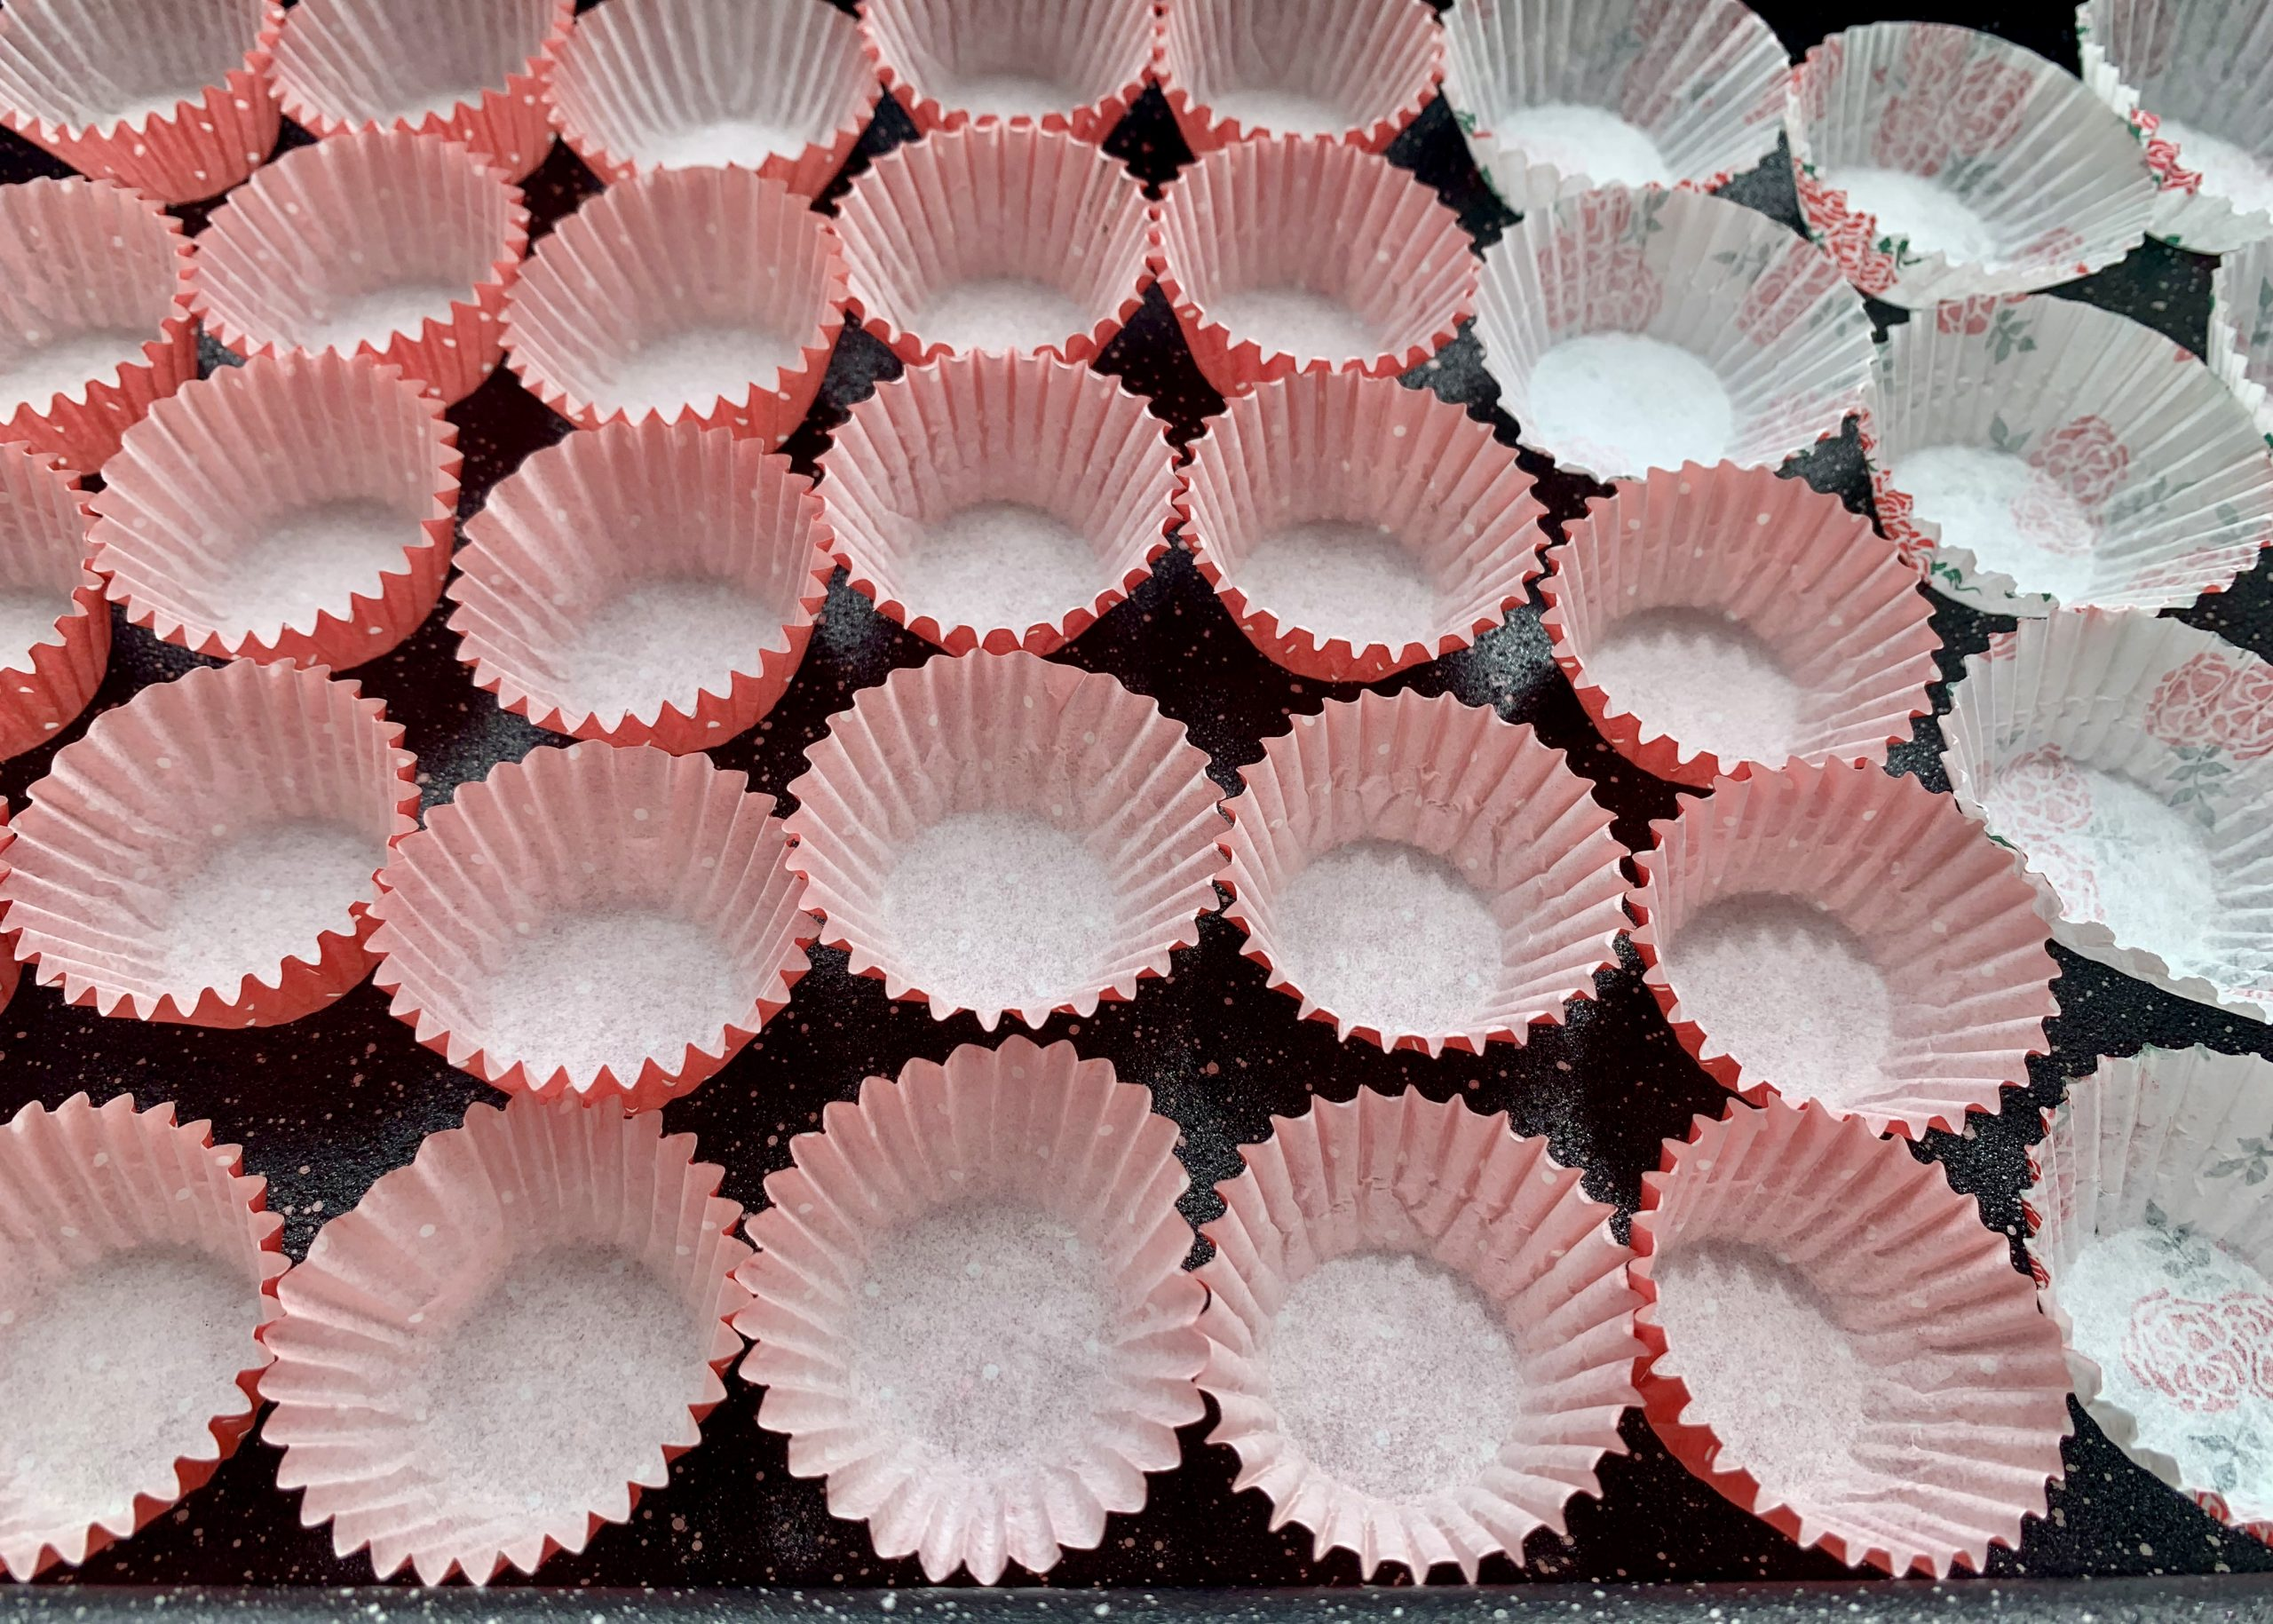 Petit four cases lined up on a baking tray